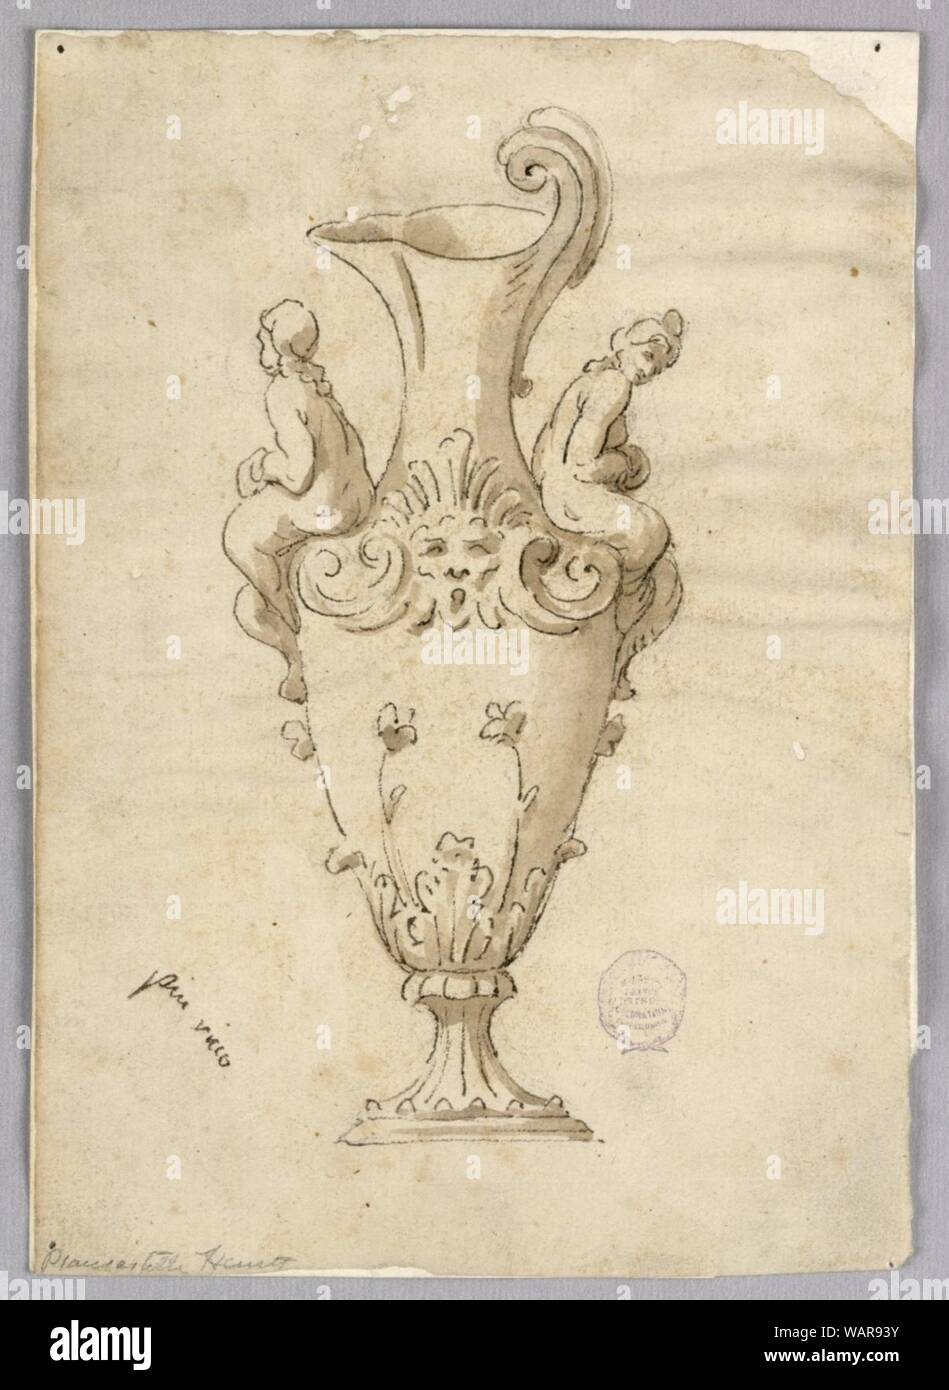 Drawing, Design for an Ewer, 19th century Stock Photo